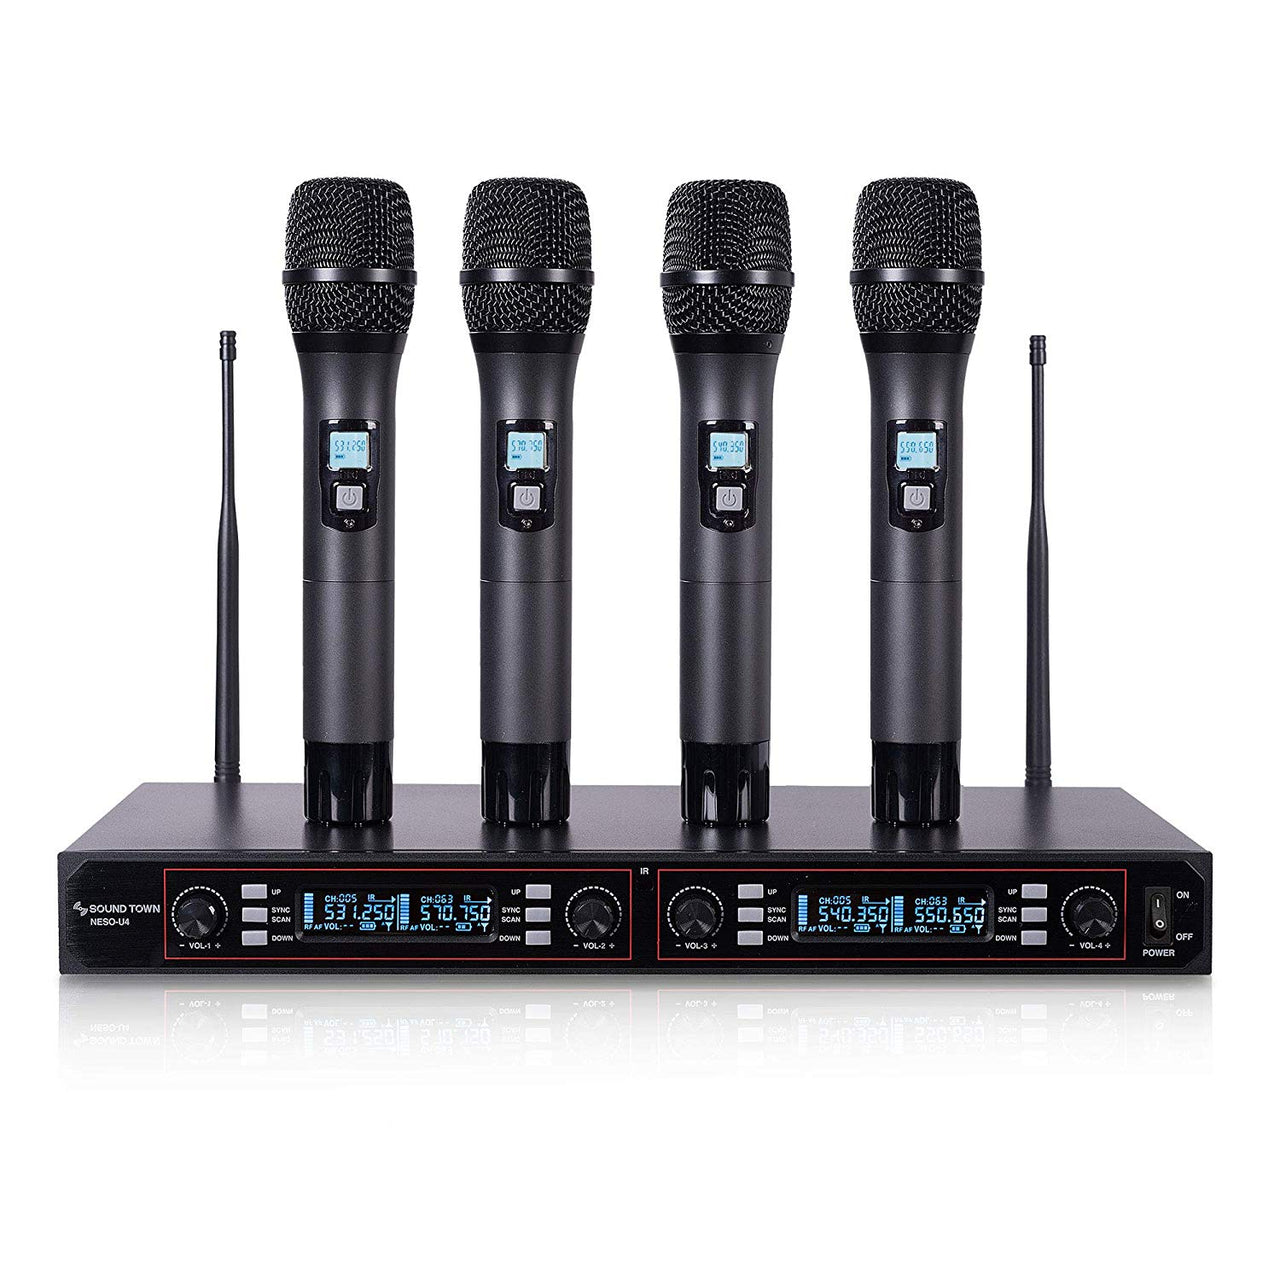 NESO-U4HH<br/>200-Channel Rack Mountable Professional UHF Wireless Microphone System with Metal Receiver and 4 Handheld Mics